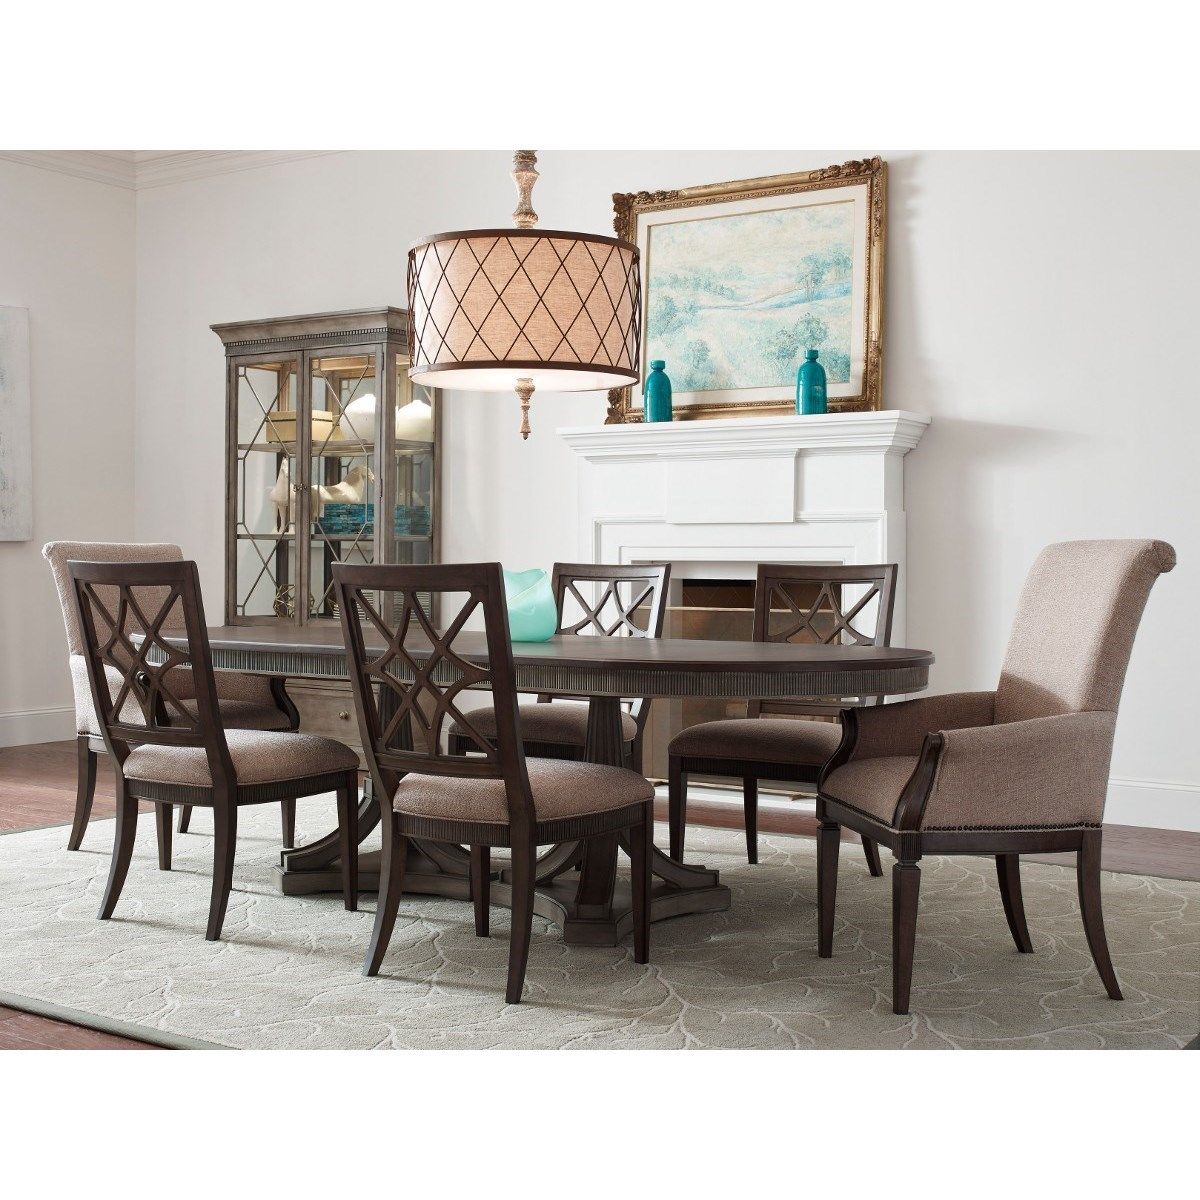 American Drew Dining Room Furniture: American Drew Savona Freidrick Dining Table With Leaf